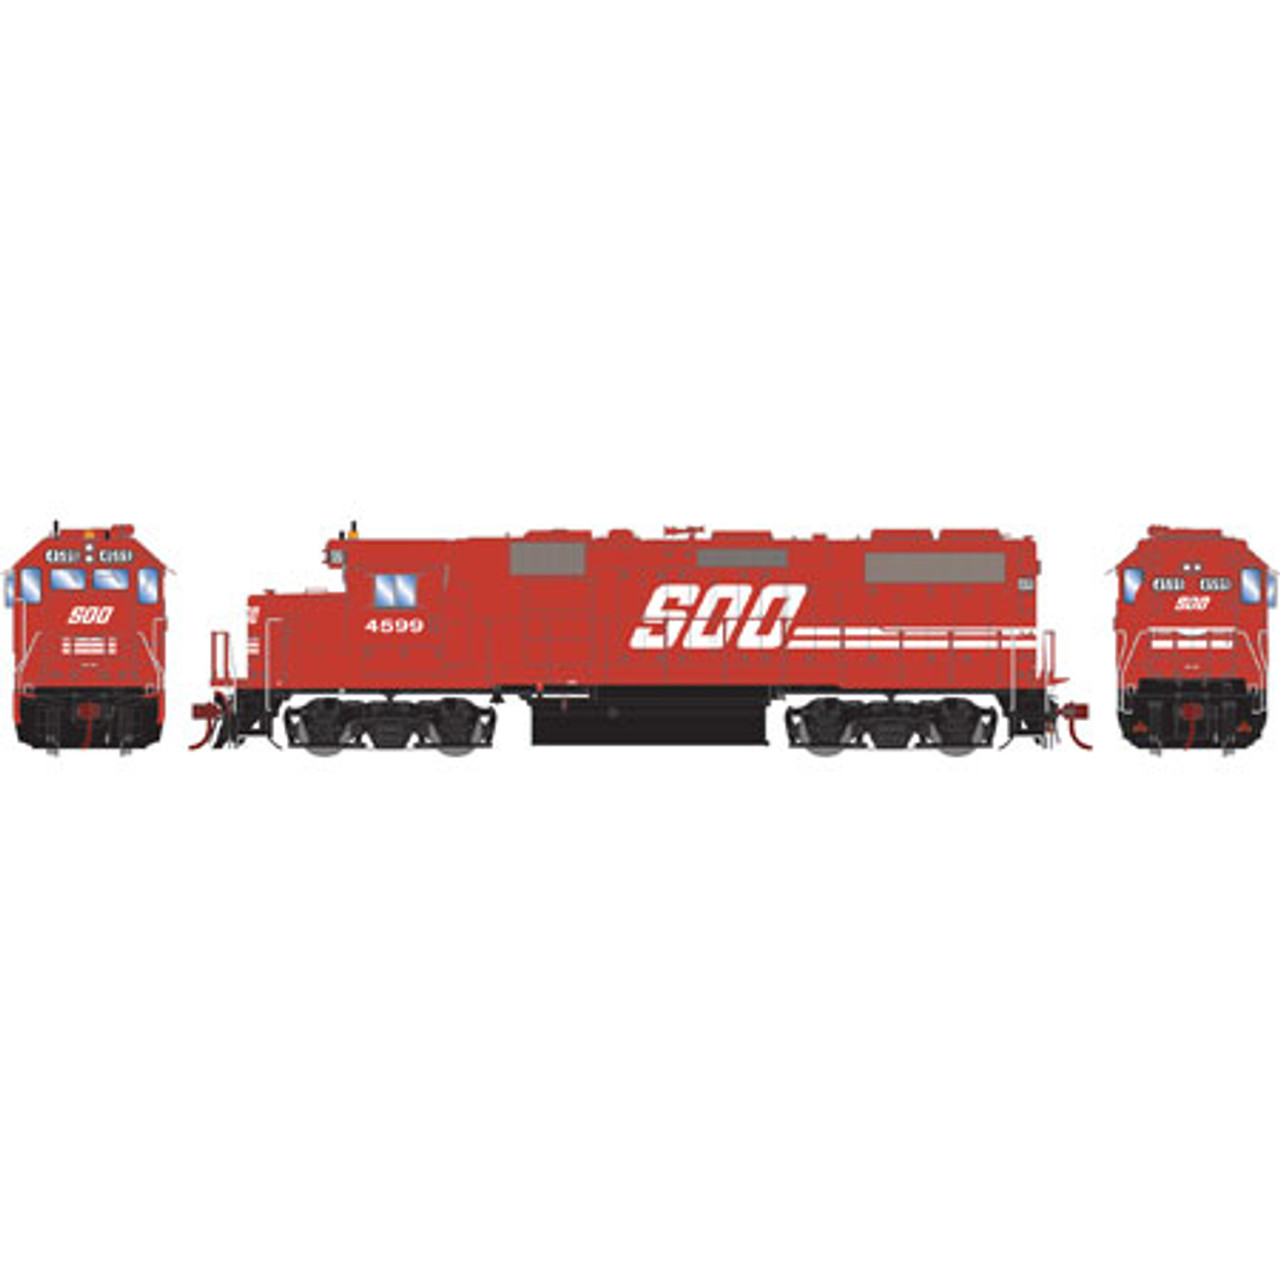 Athearn ATHG65500 GP39-2 Phase II Soo - Soo Line #4599 with DCC & Sound Tsunami2  (SCALE=HO)  Part #ATHG65500